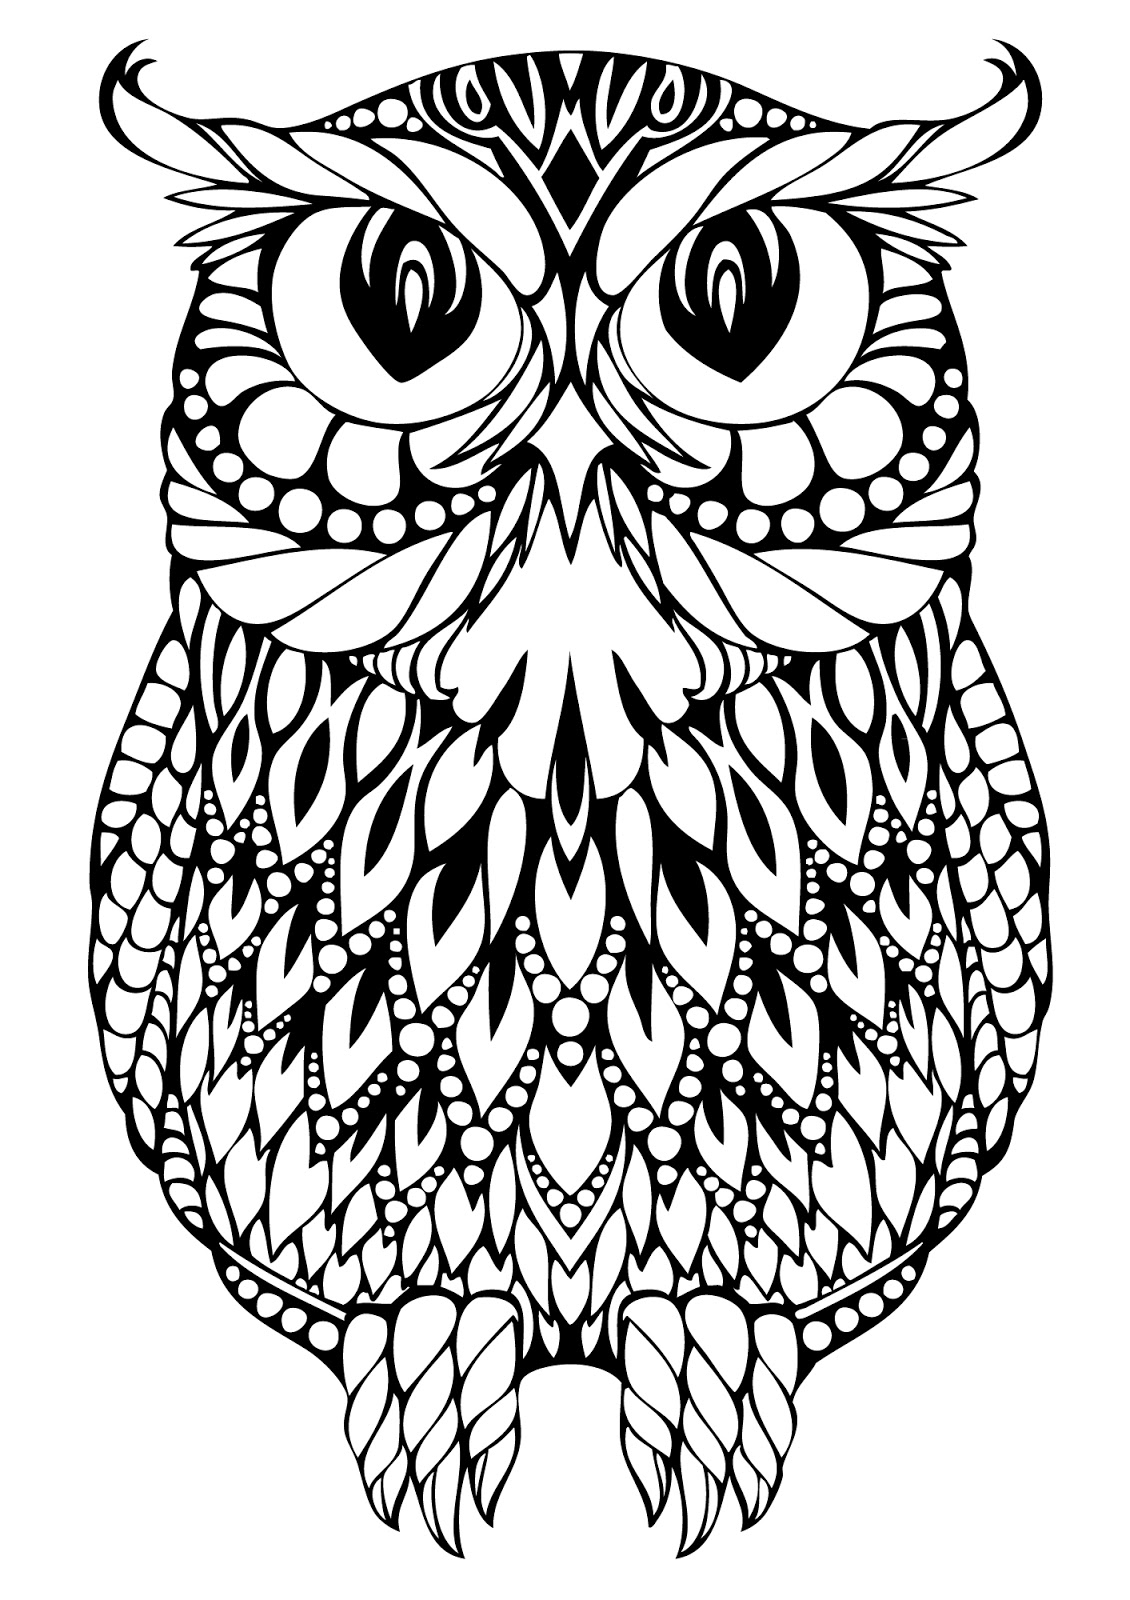 coloring book for adults 20 gorgeous free printable adult coloring pages page 3 for adults coloring book